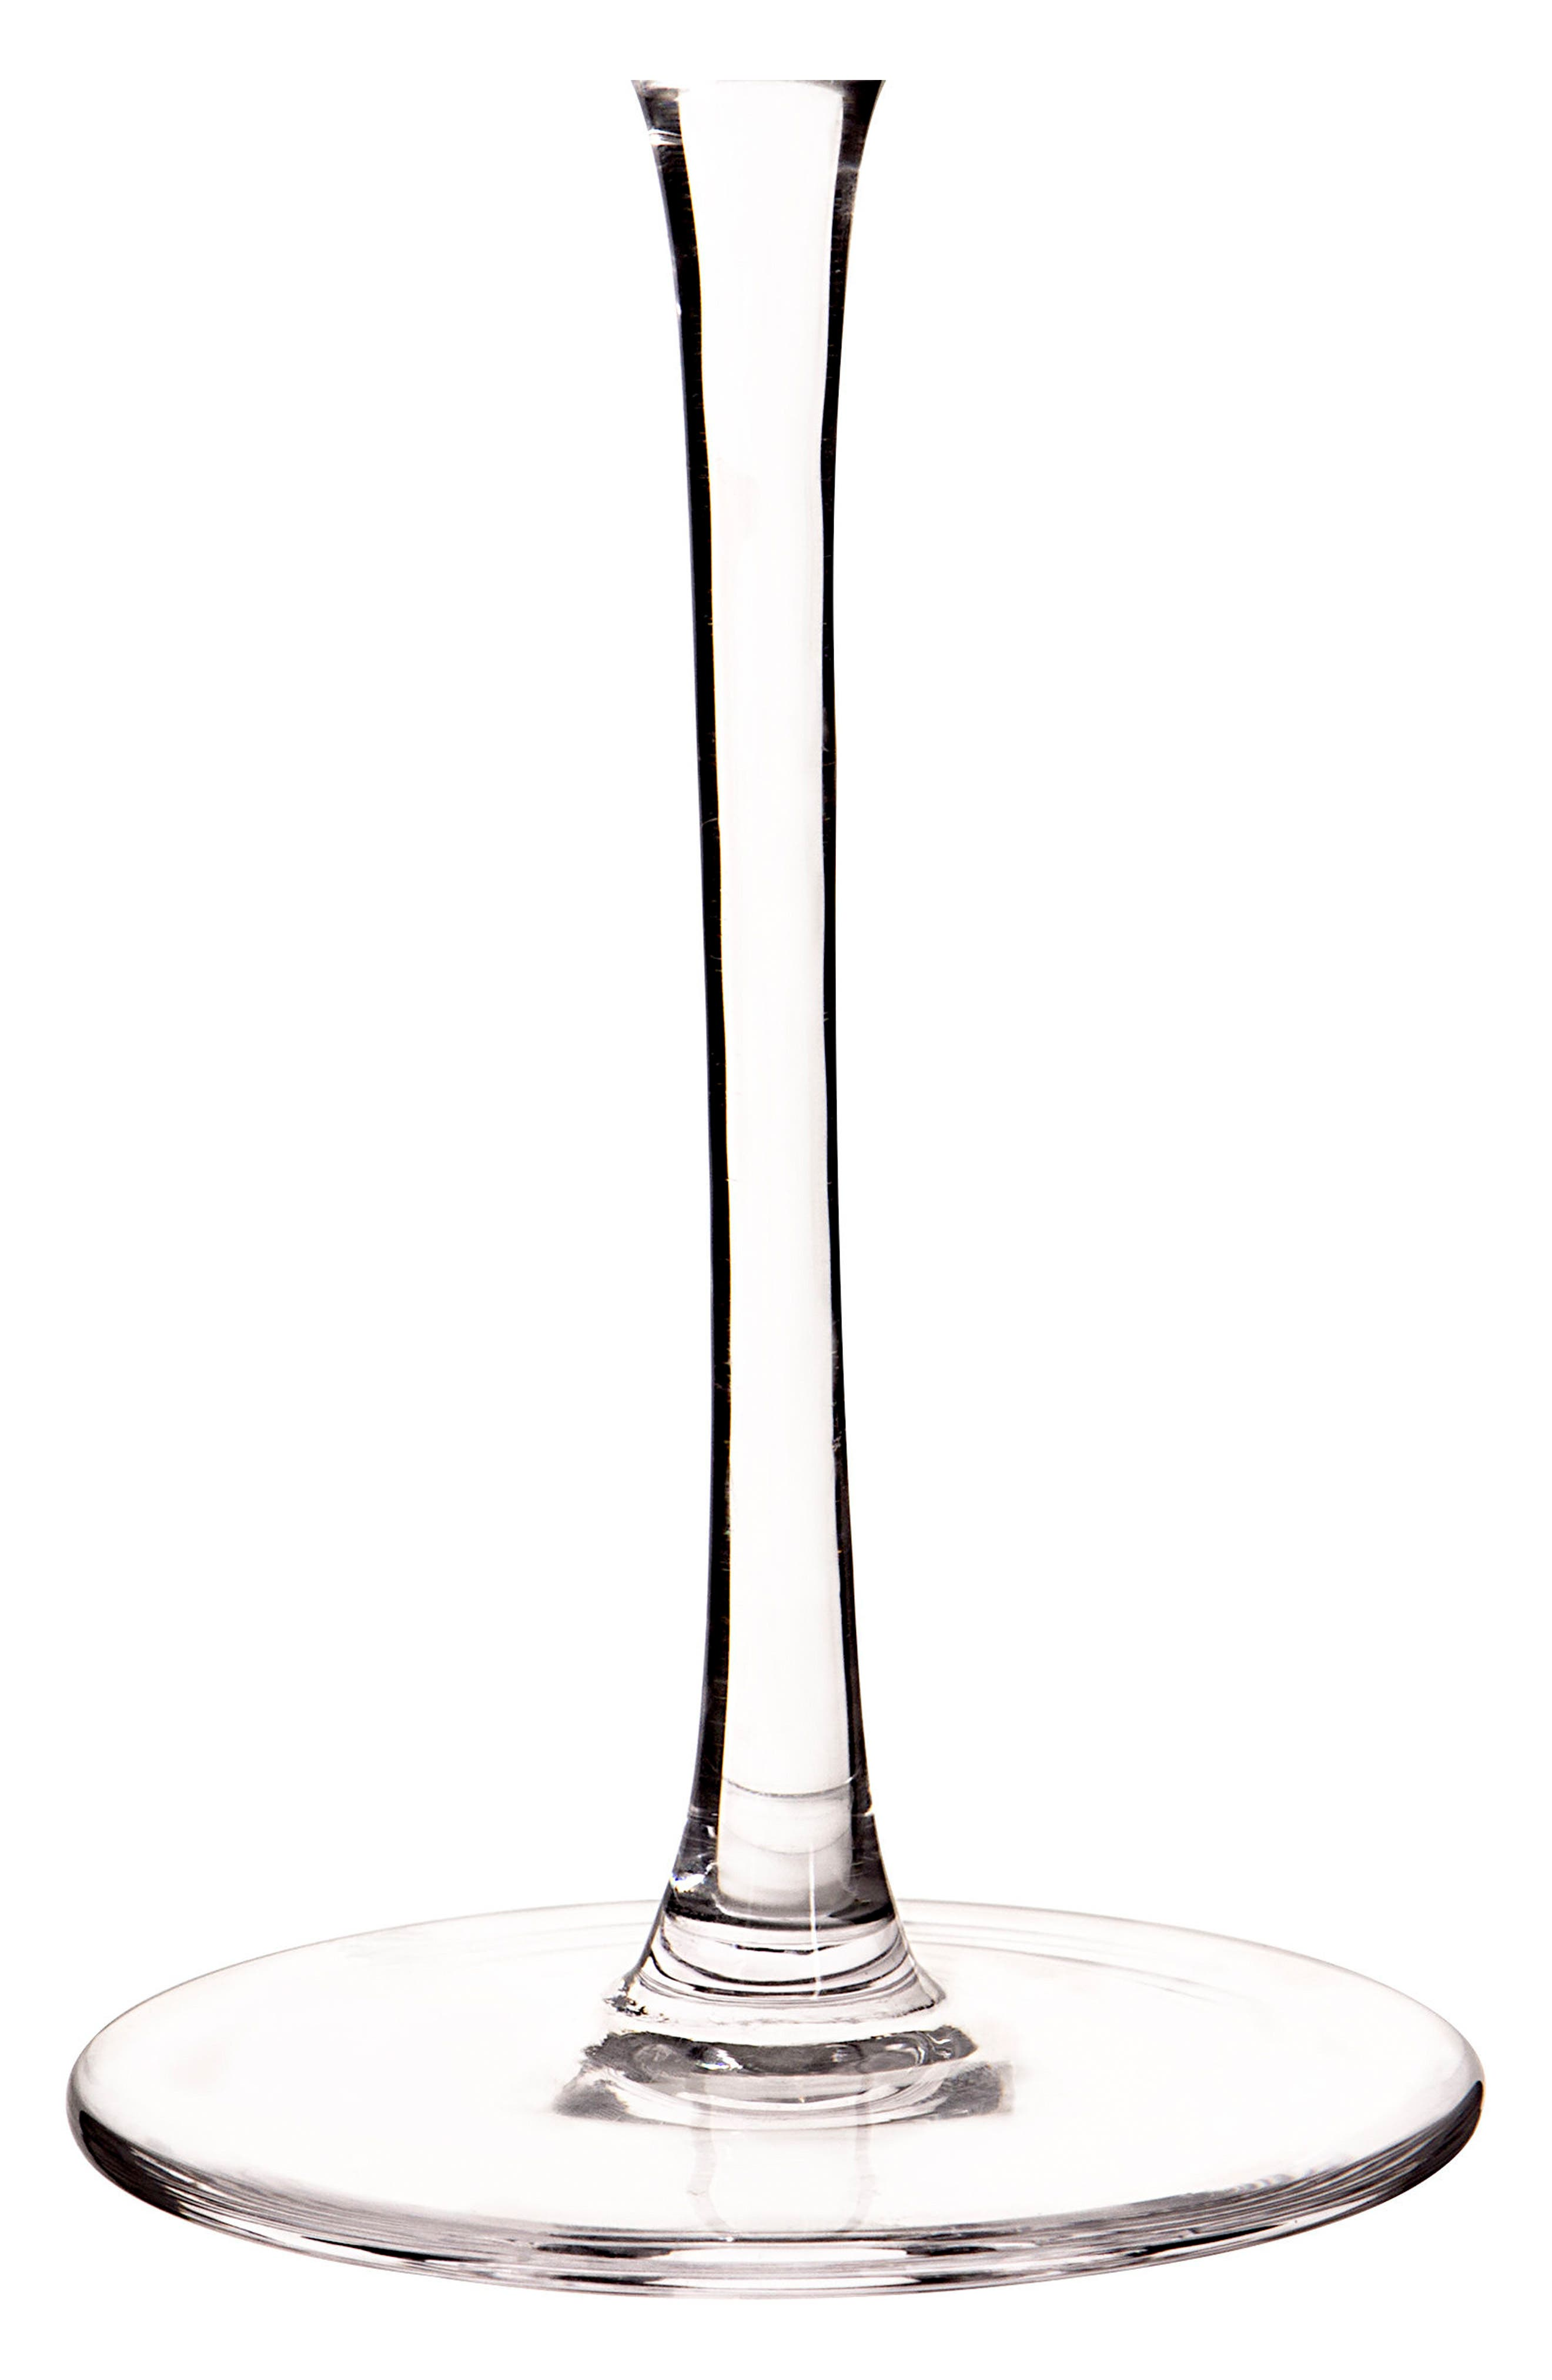 Love Set of 2 Champagne Coupe Toasting Glasses,                             Alternate thumbnail 7, color,                             710